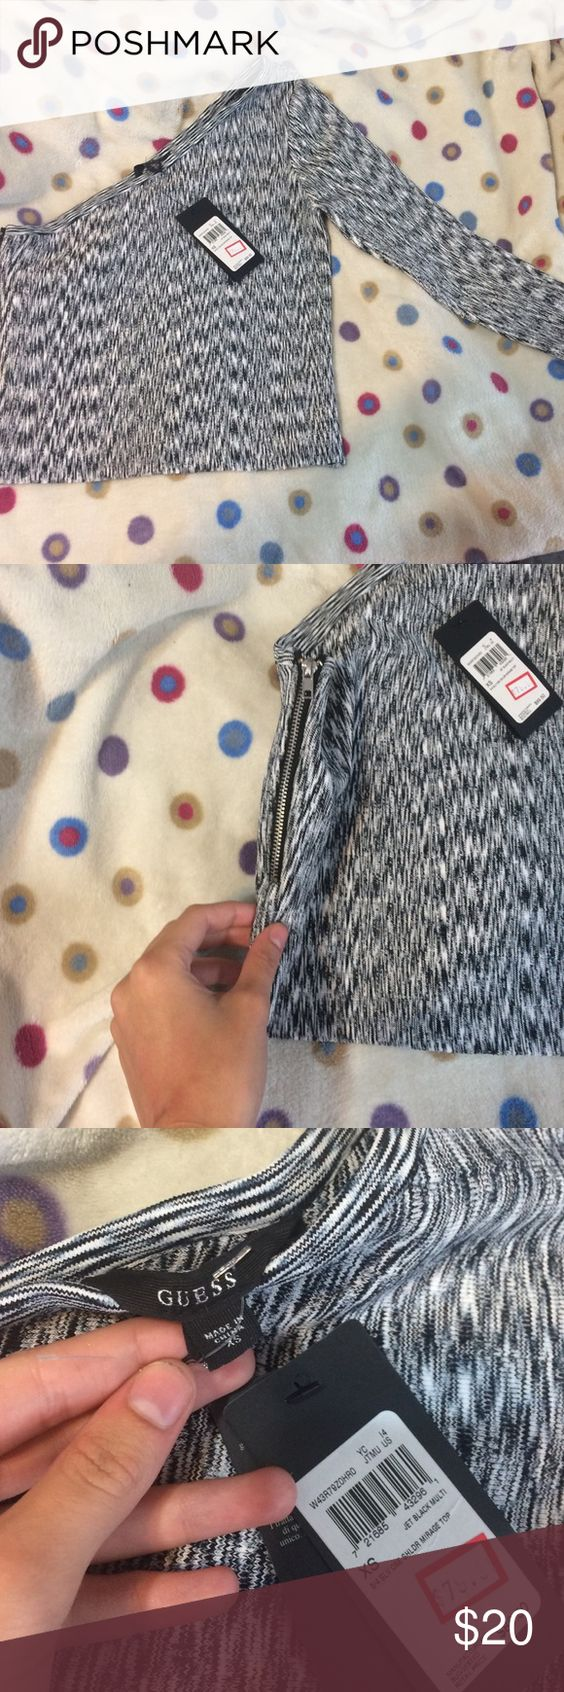 Nwt Guess one sleeve fitted crop Super cute just doesn't fit me the way I want it too! Originally $90 but was on sale for $80! Check out my closet and make a bundle! GUESS Tops Crop Tops